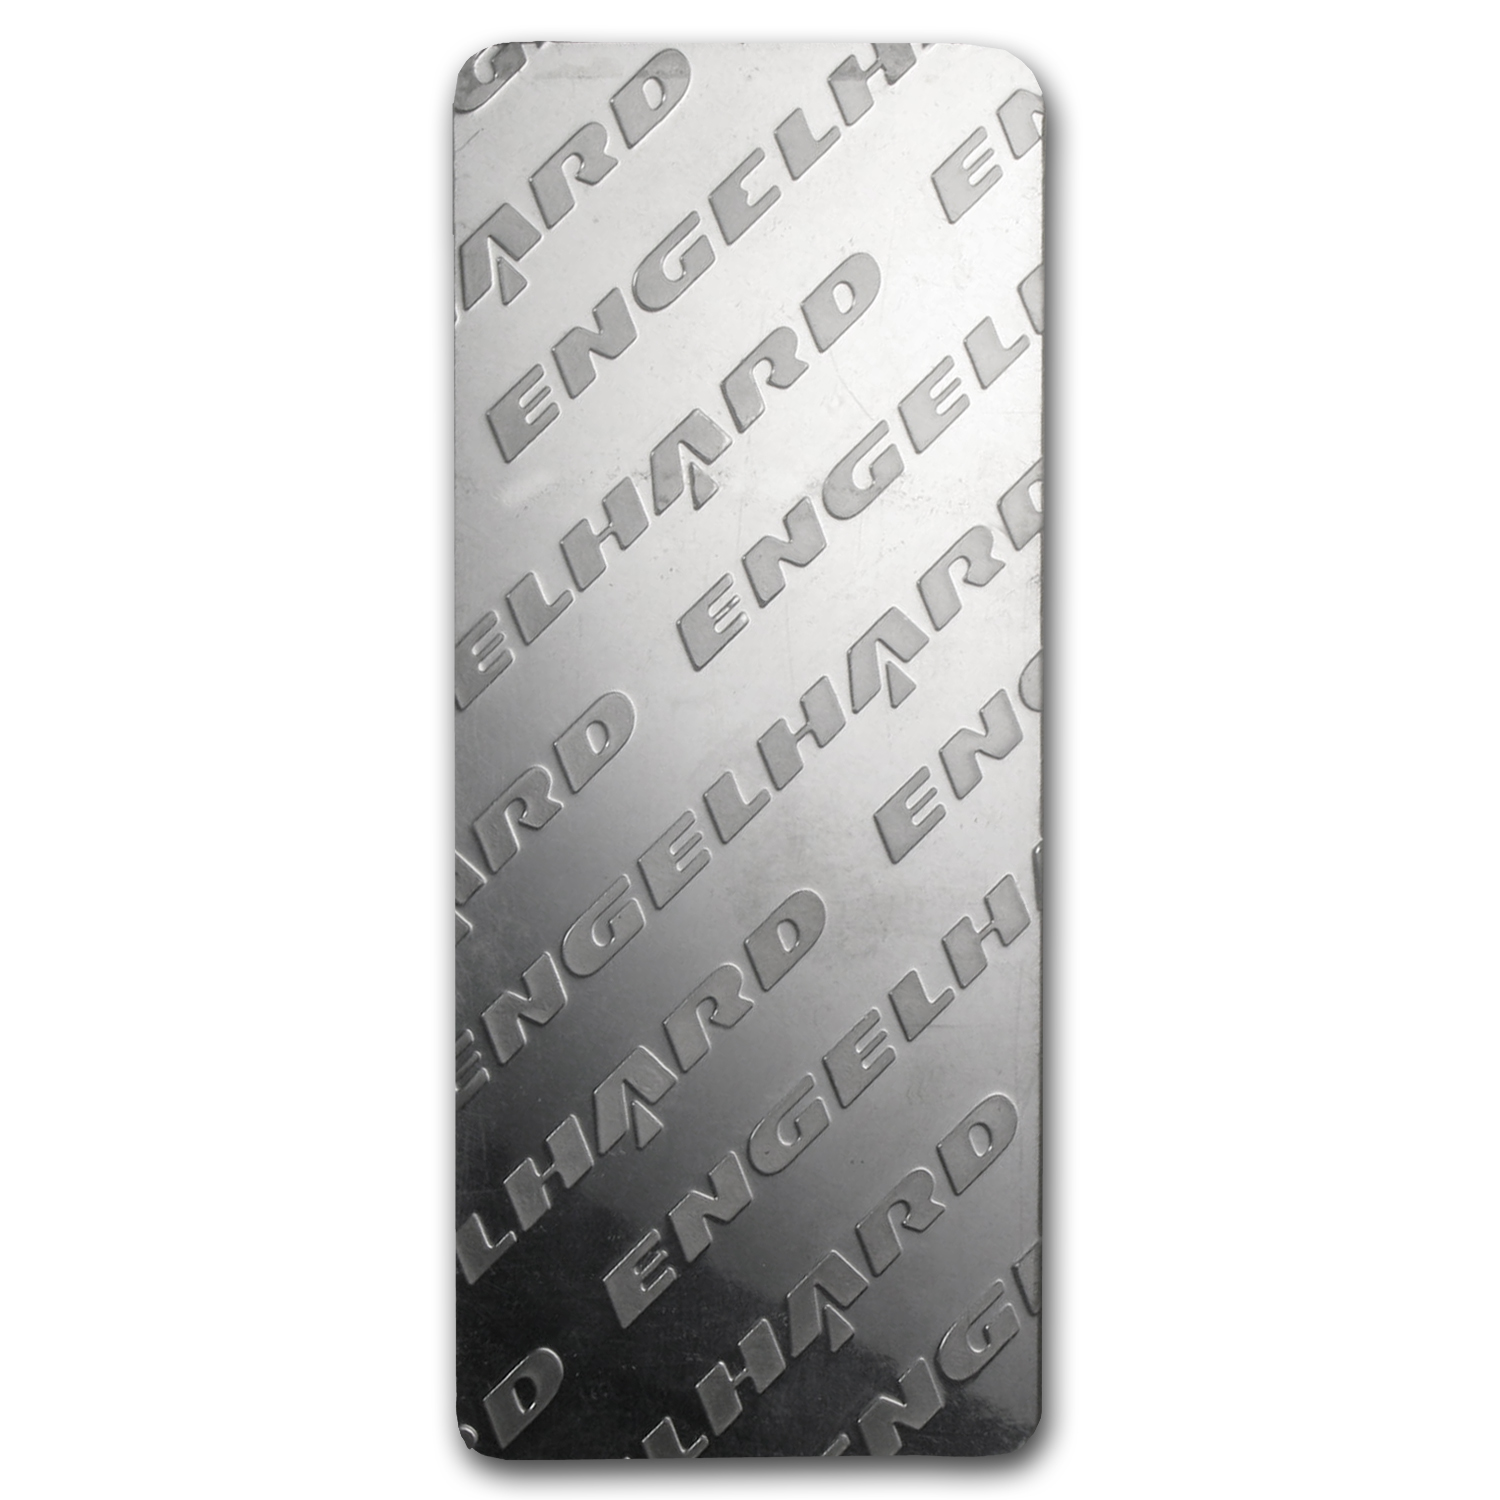 10 oz Platinum Bar - Engelhard (.9995 Fine, 'Eagle' logo, Assay)